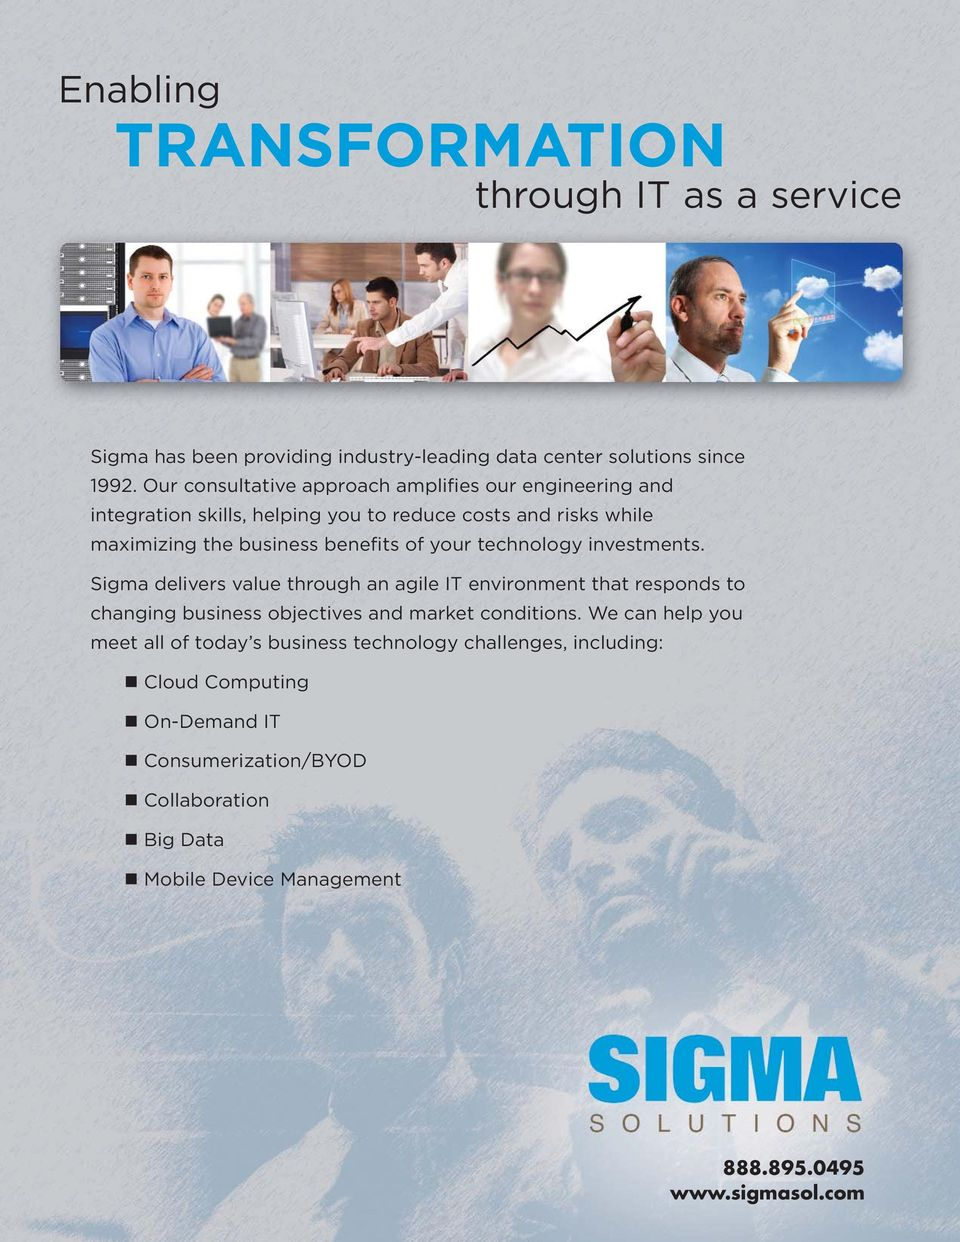 your technology investments. Sigma delivers value through an agile IT environment that responds to changing business objectives and market conditions.